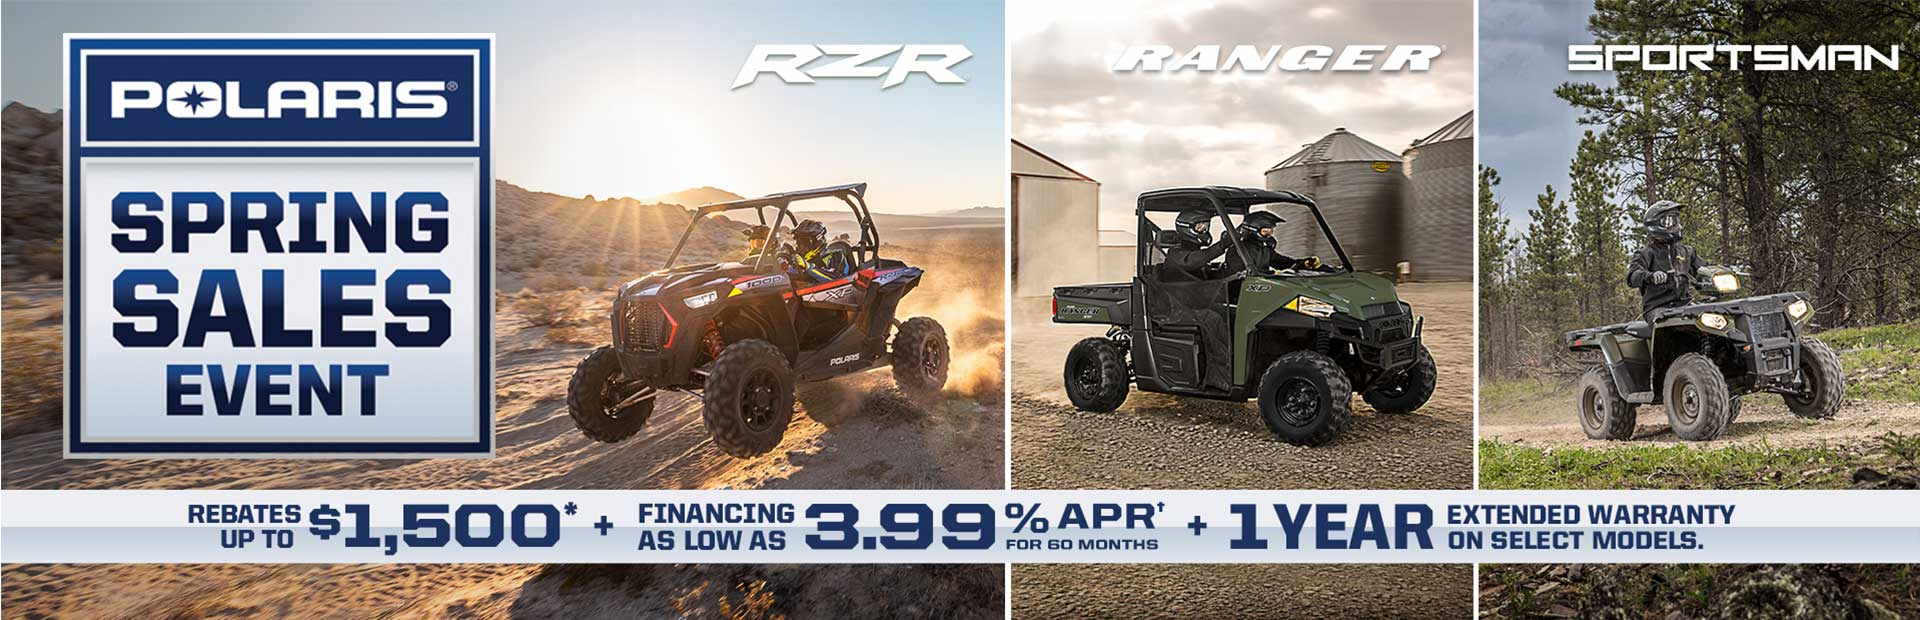 Polaris Spring Sales Event. Rebates up to $1,500 + Financing as low as 3.99% APR for 60 months + 1 Y